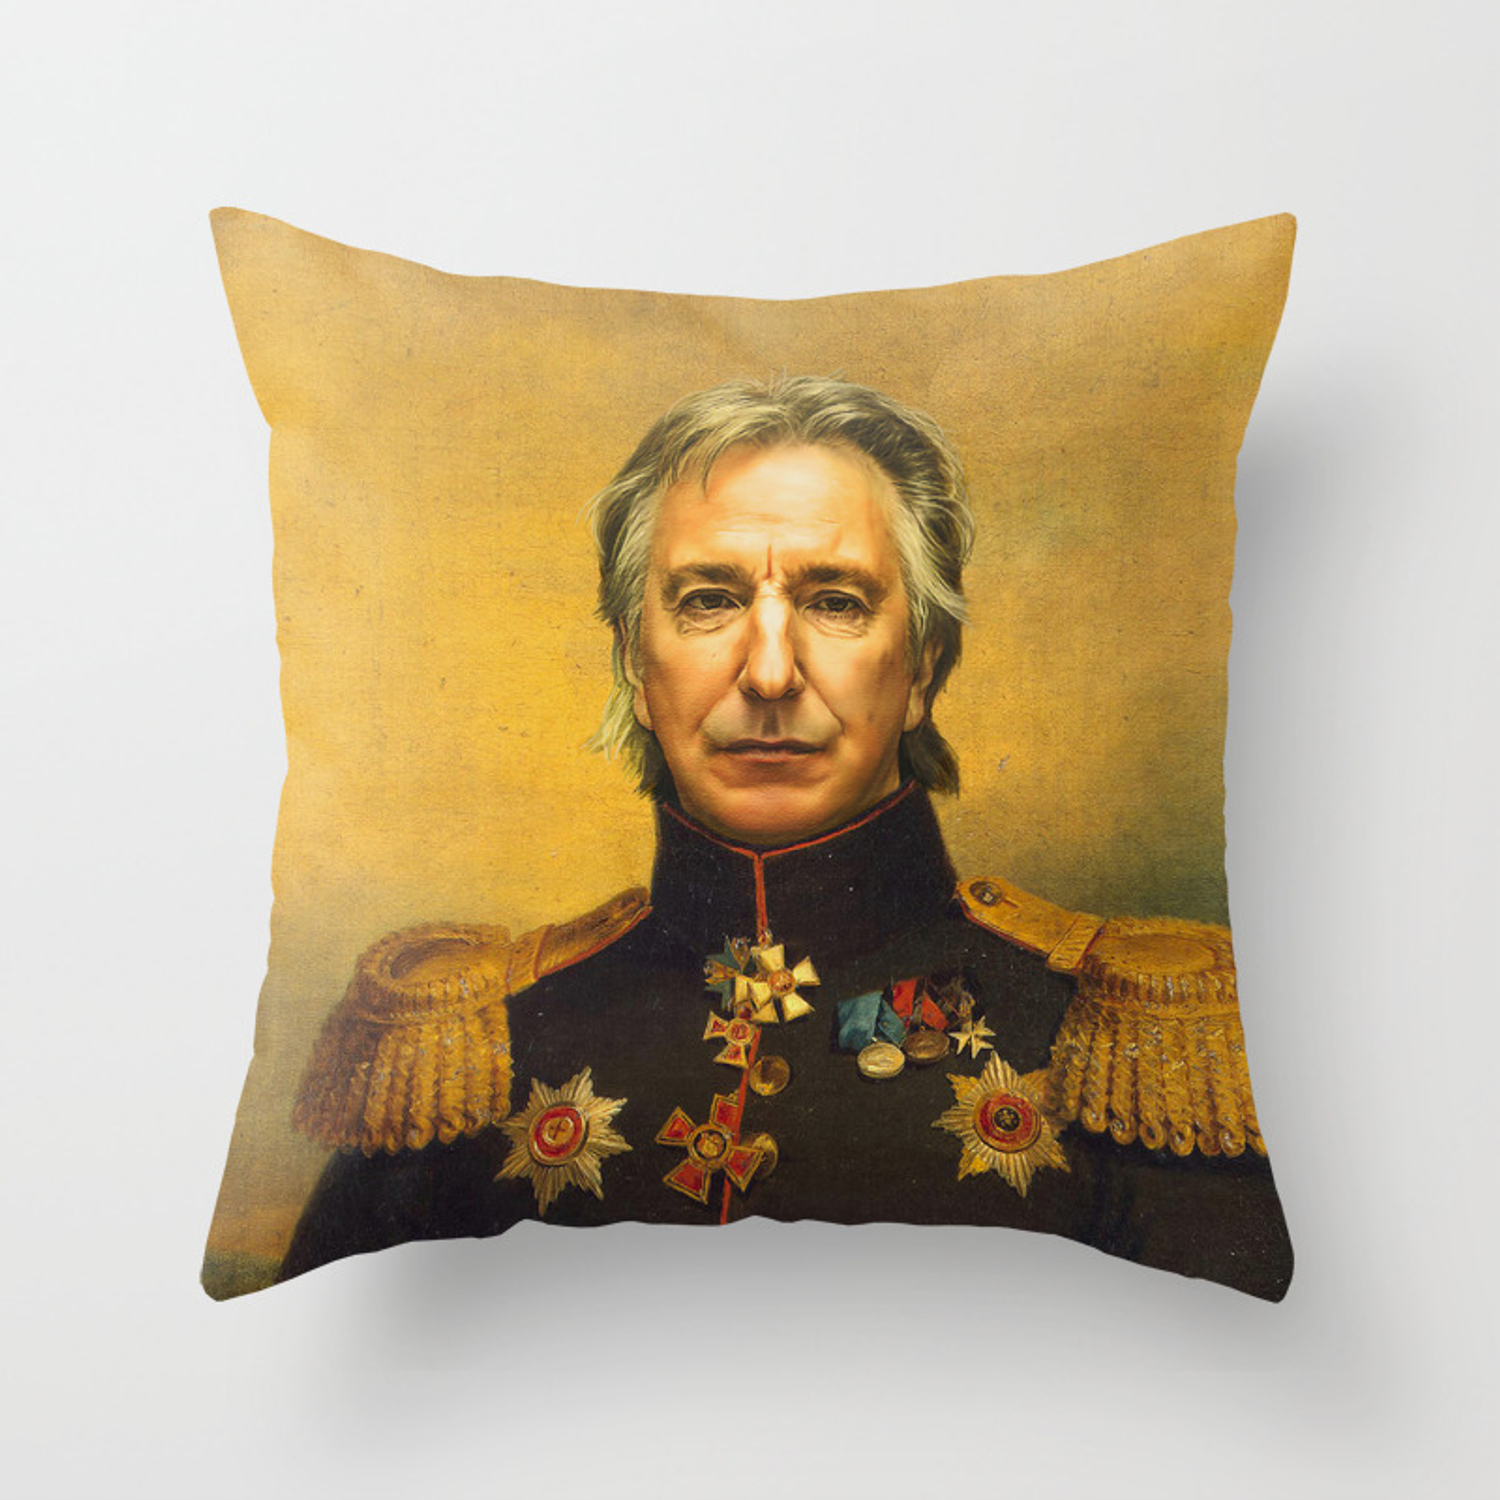 Alan Rickman Replaceface Throw Pillow By Replaceface Society6